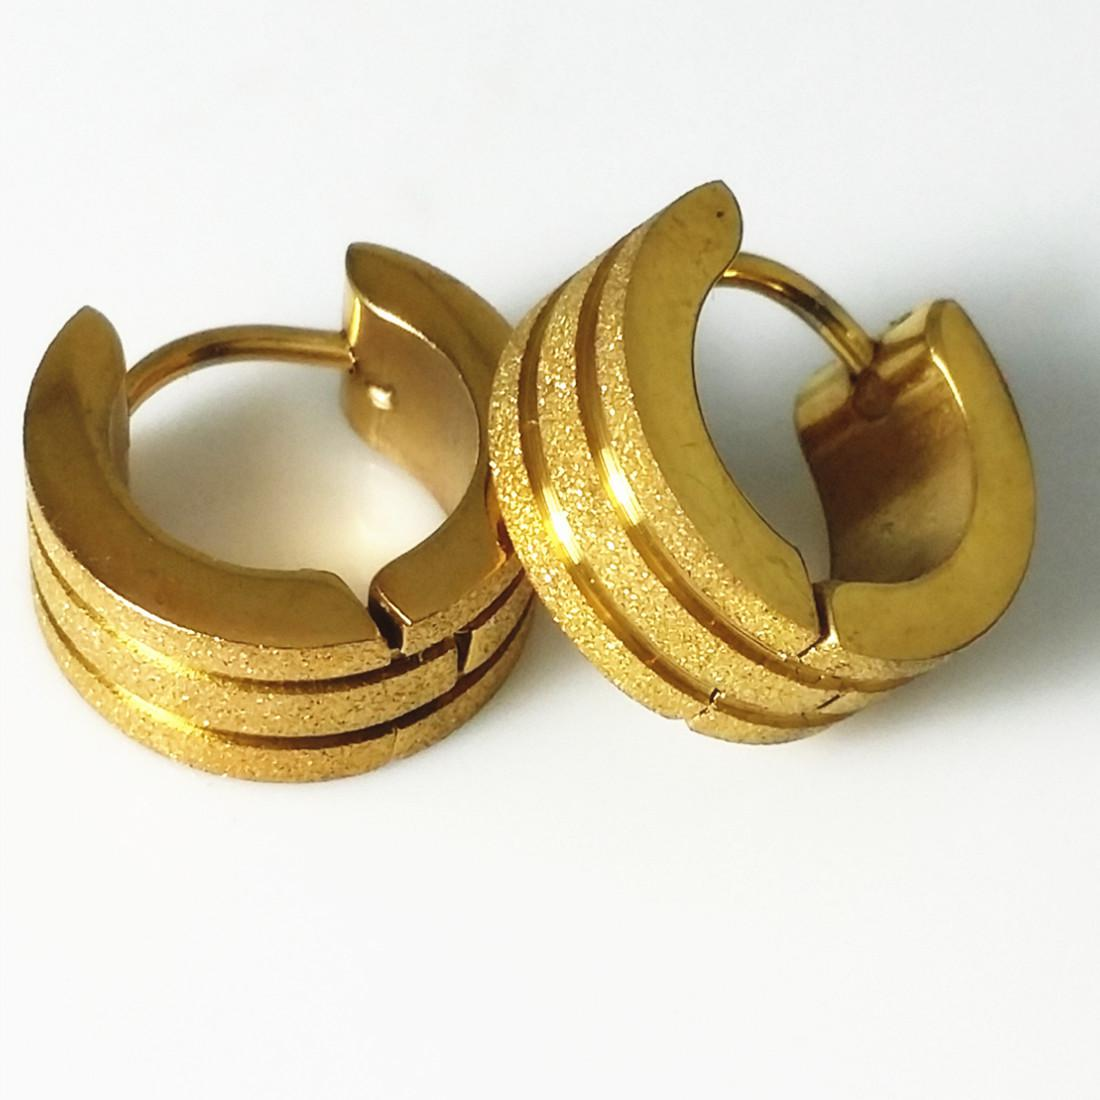 hoop earrings com jewelry golden gold ring yellow dp amazon diameter